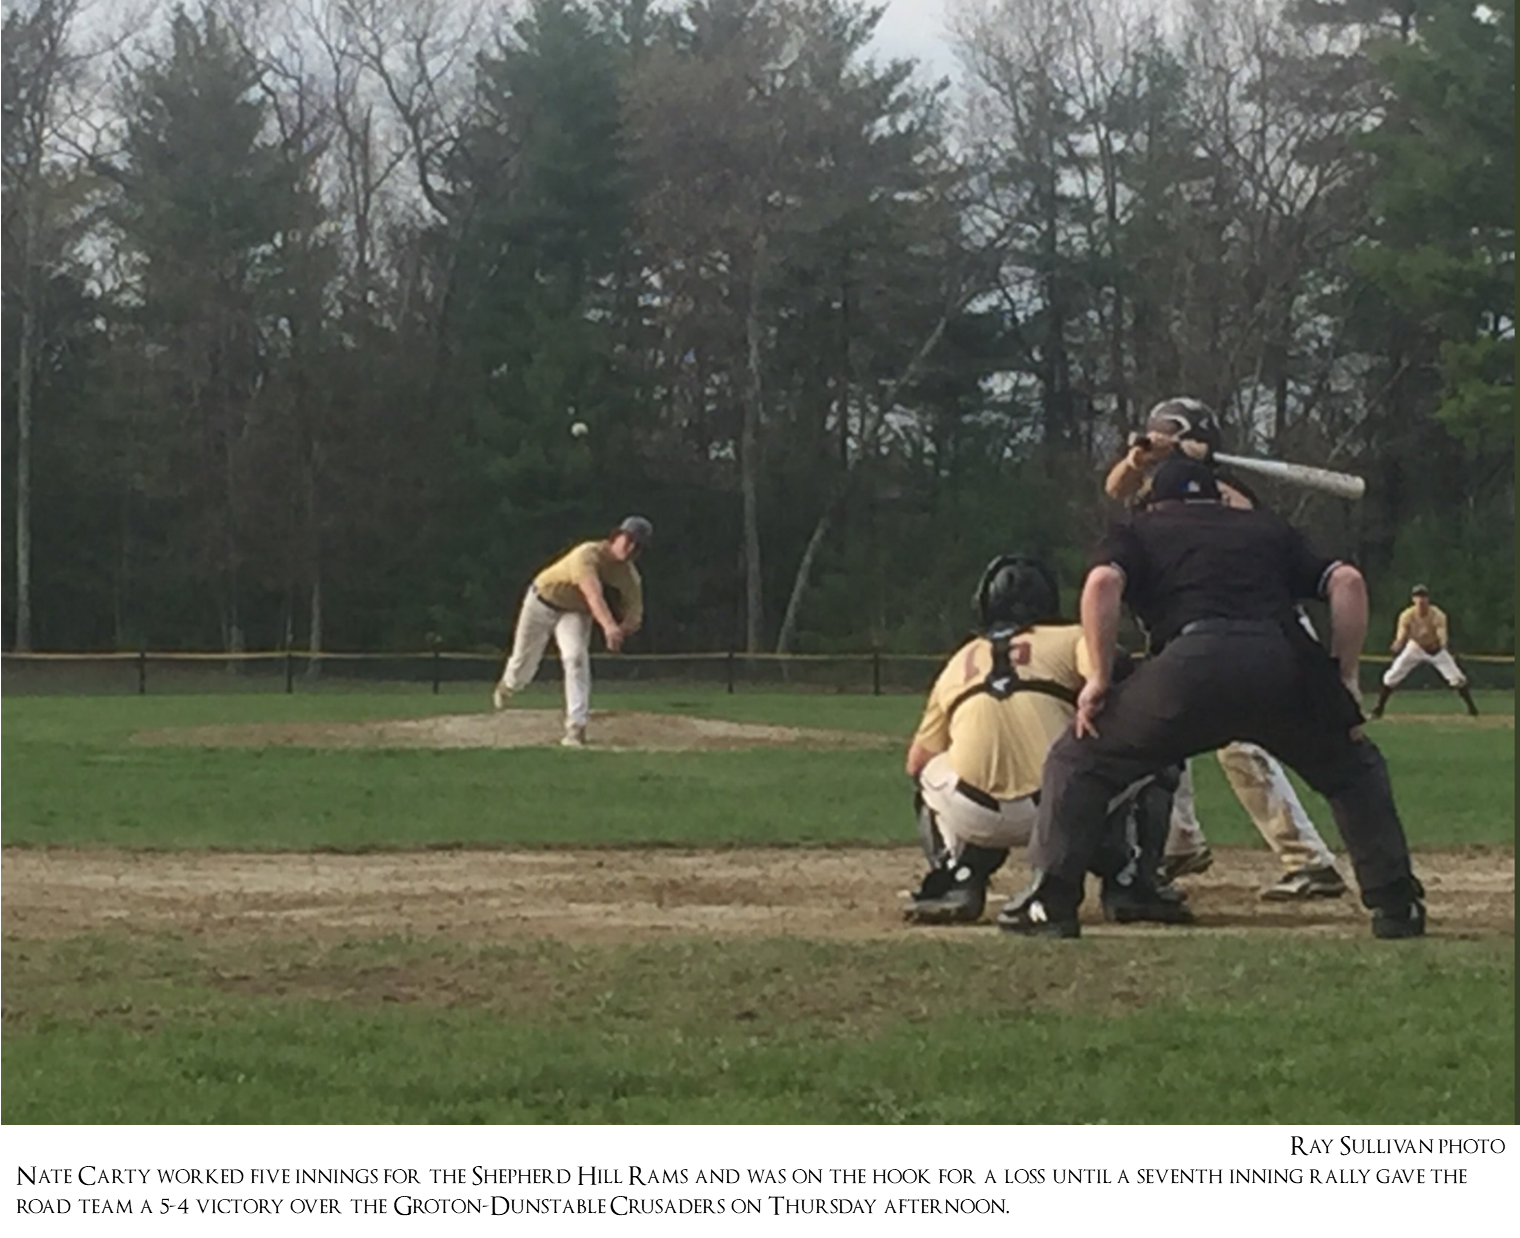 Baseball: Shepherd Hill 5, Groton-Dunstable 4